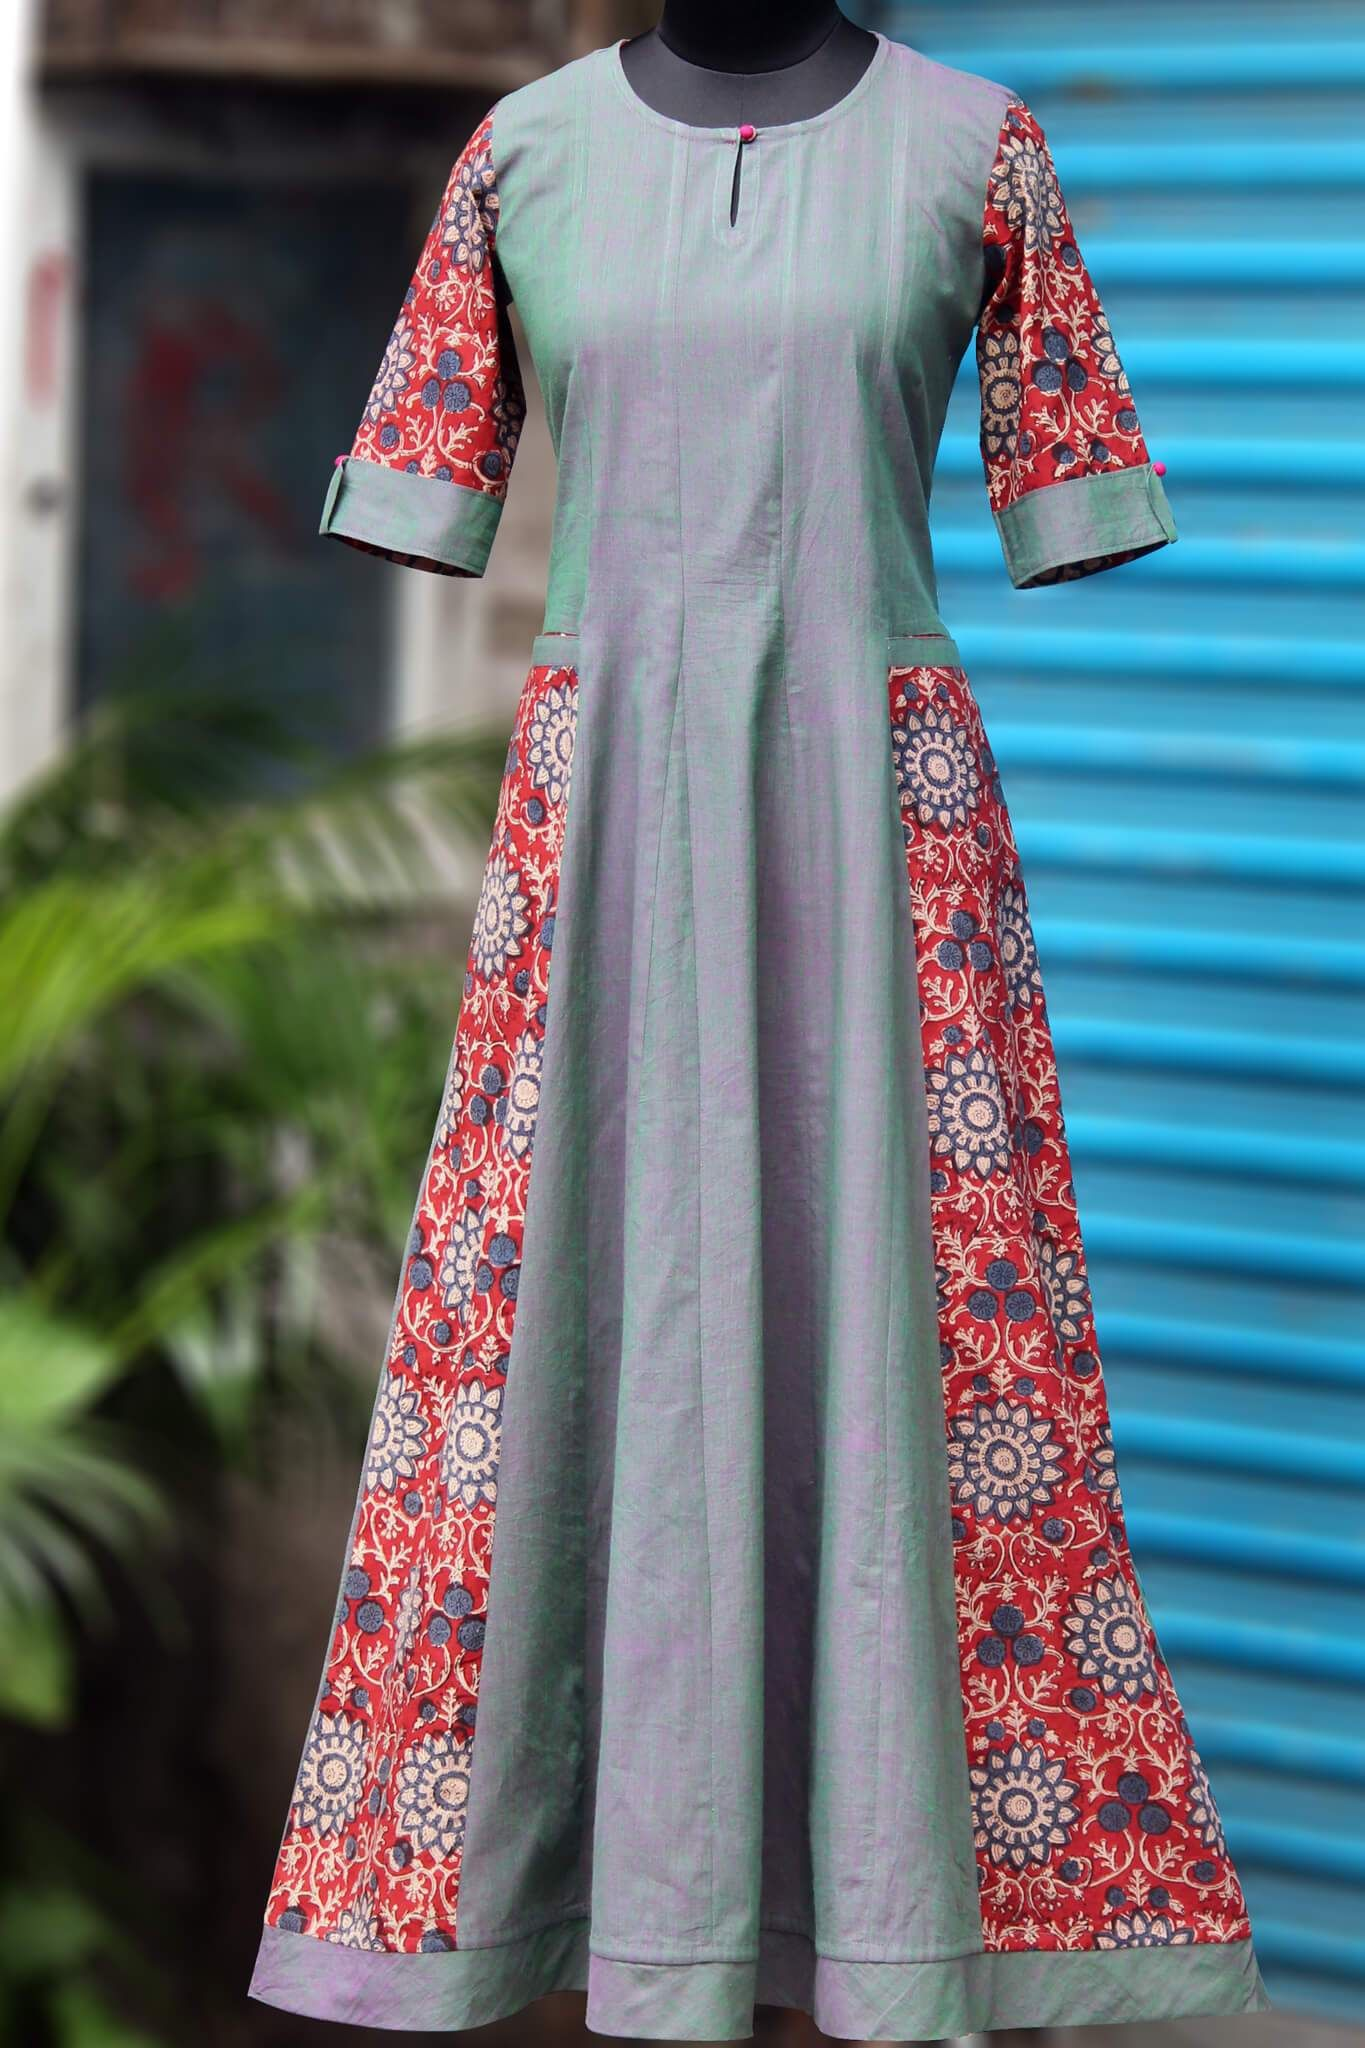 A perfect elegant long dress with side pockets main fabric